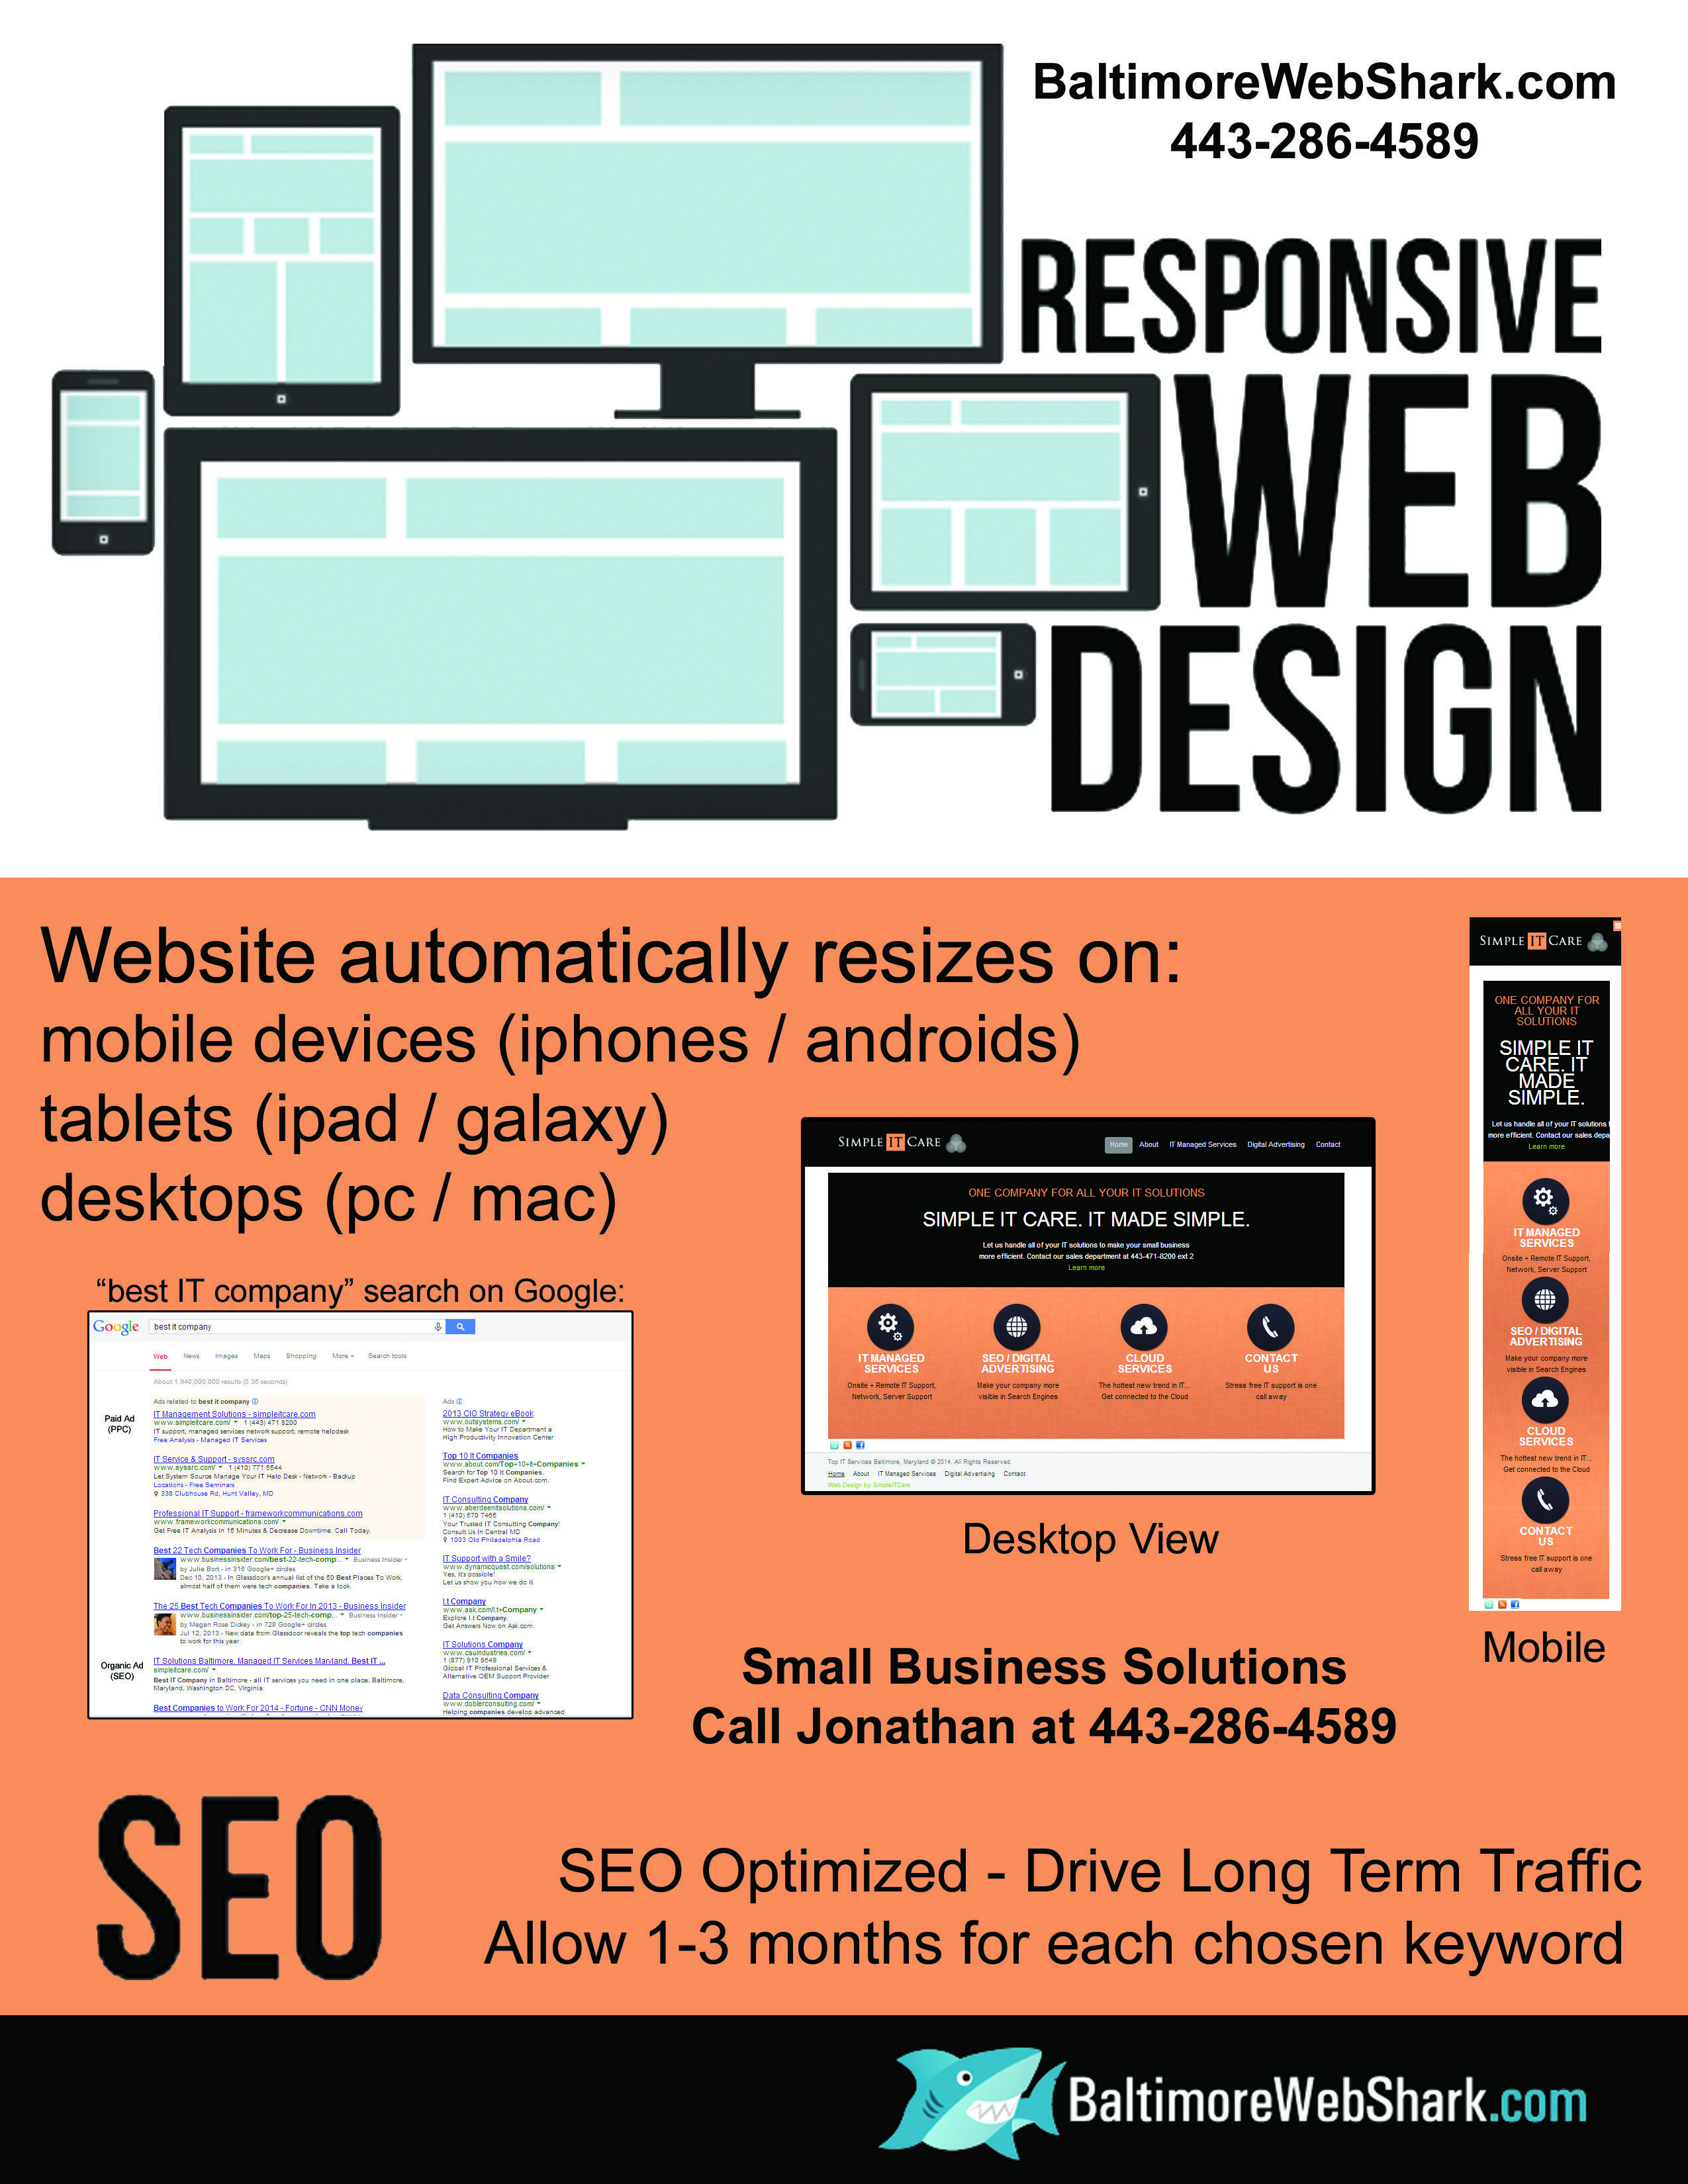 mobile-optimized-websites-flyer-baltimorewebshark